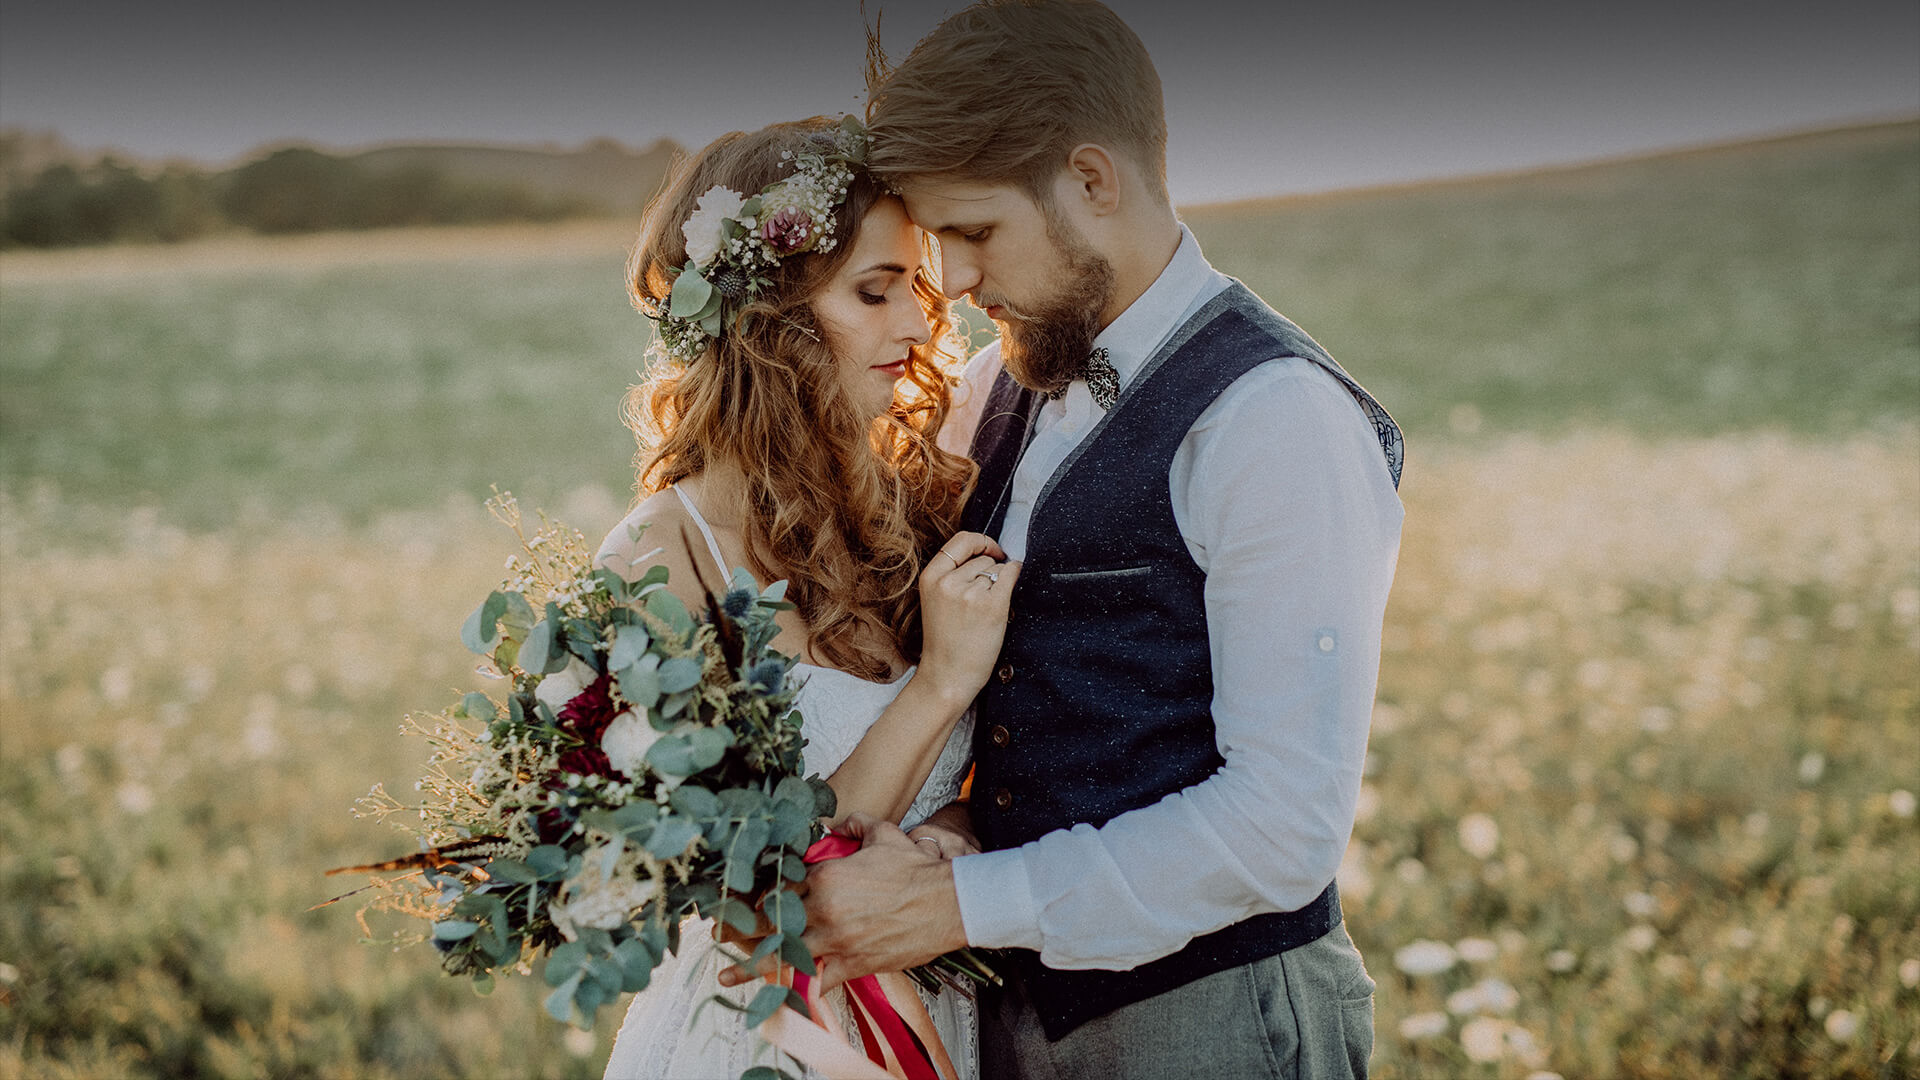 Marriage Celebrant Shauna Rowe